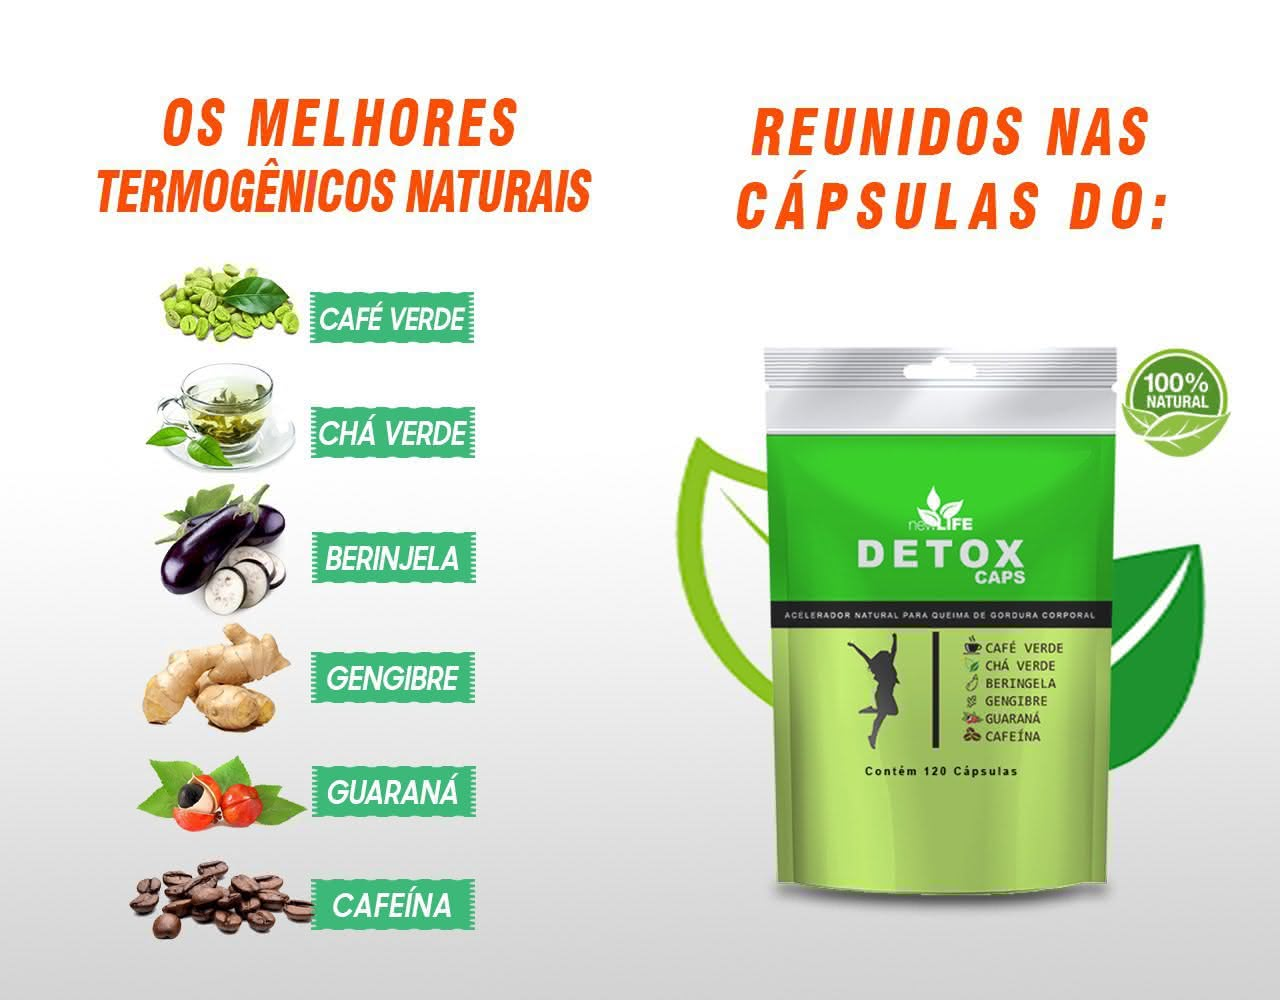 detox caps opinioes